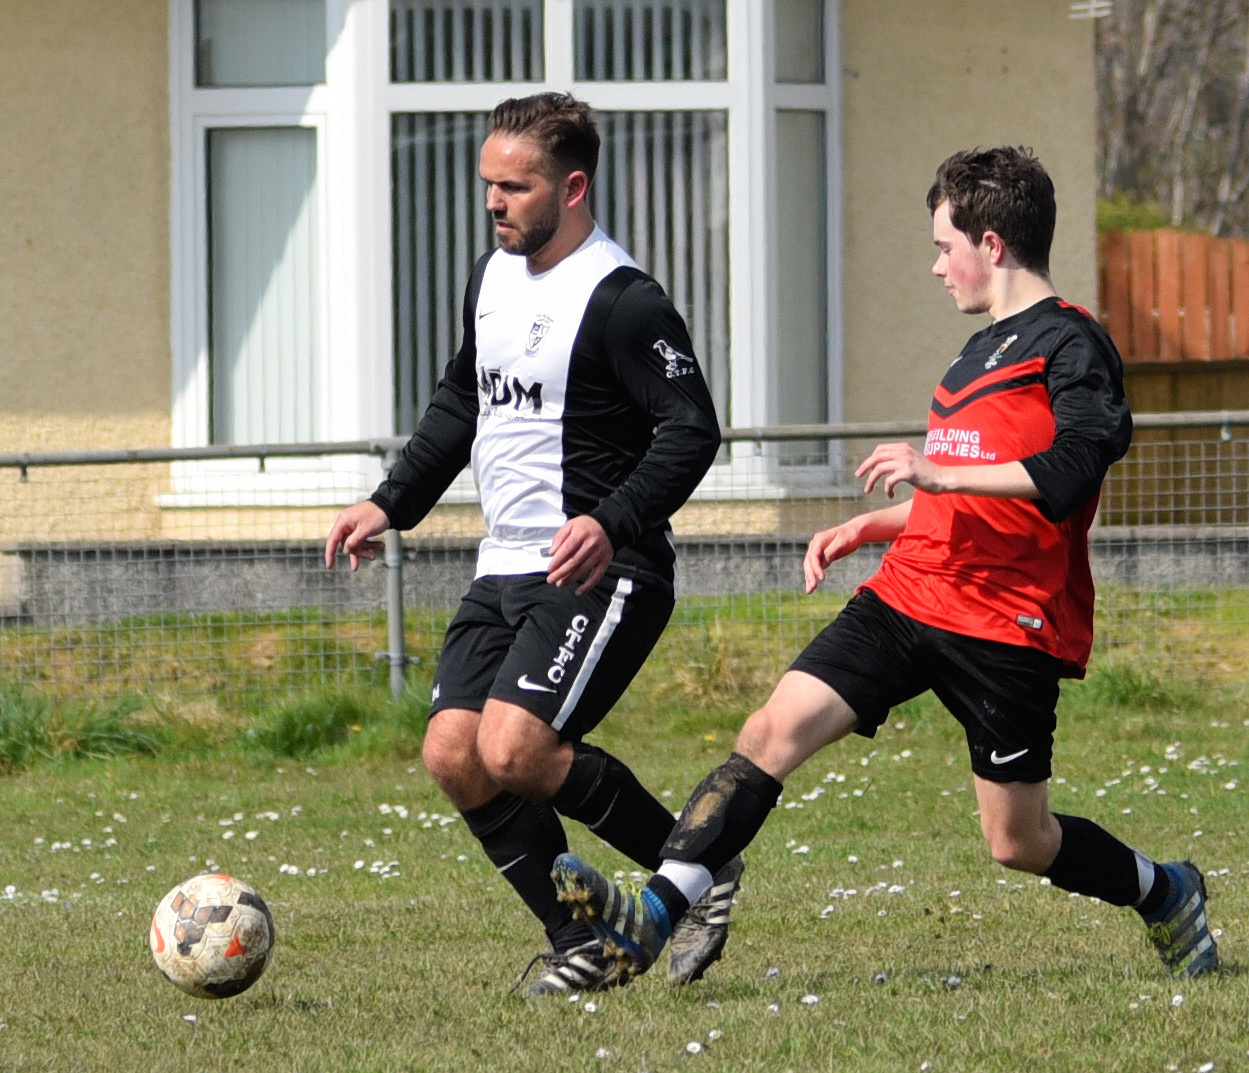 Barry Morgan in action for the Magpies in their 6-1 win over Llanboidy in the quarter finals of the Cwpan Coffa Dai Dynamo Davies PICTURE: Julie John